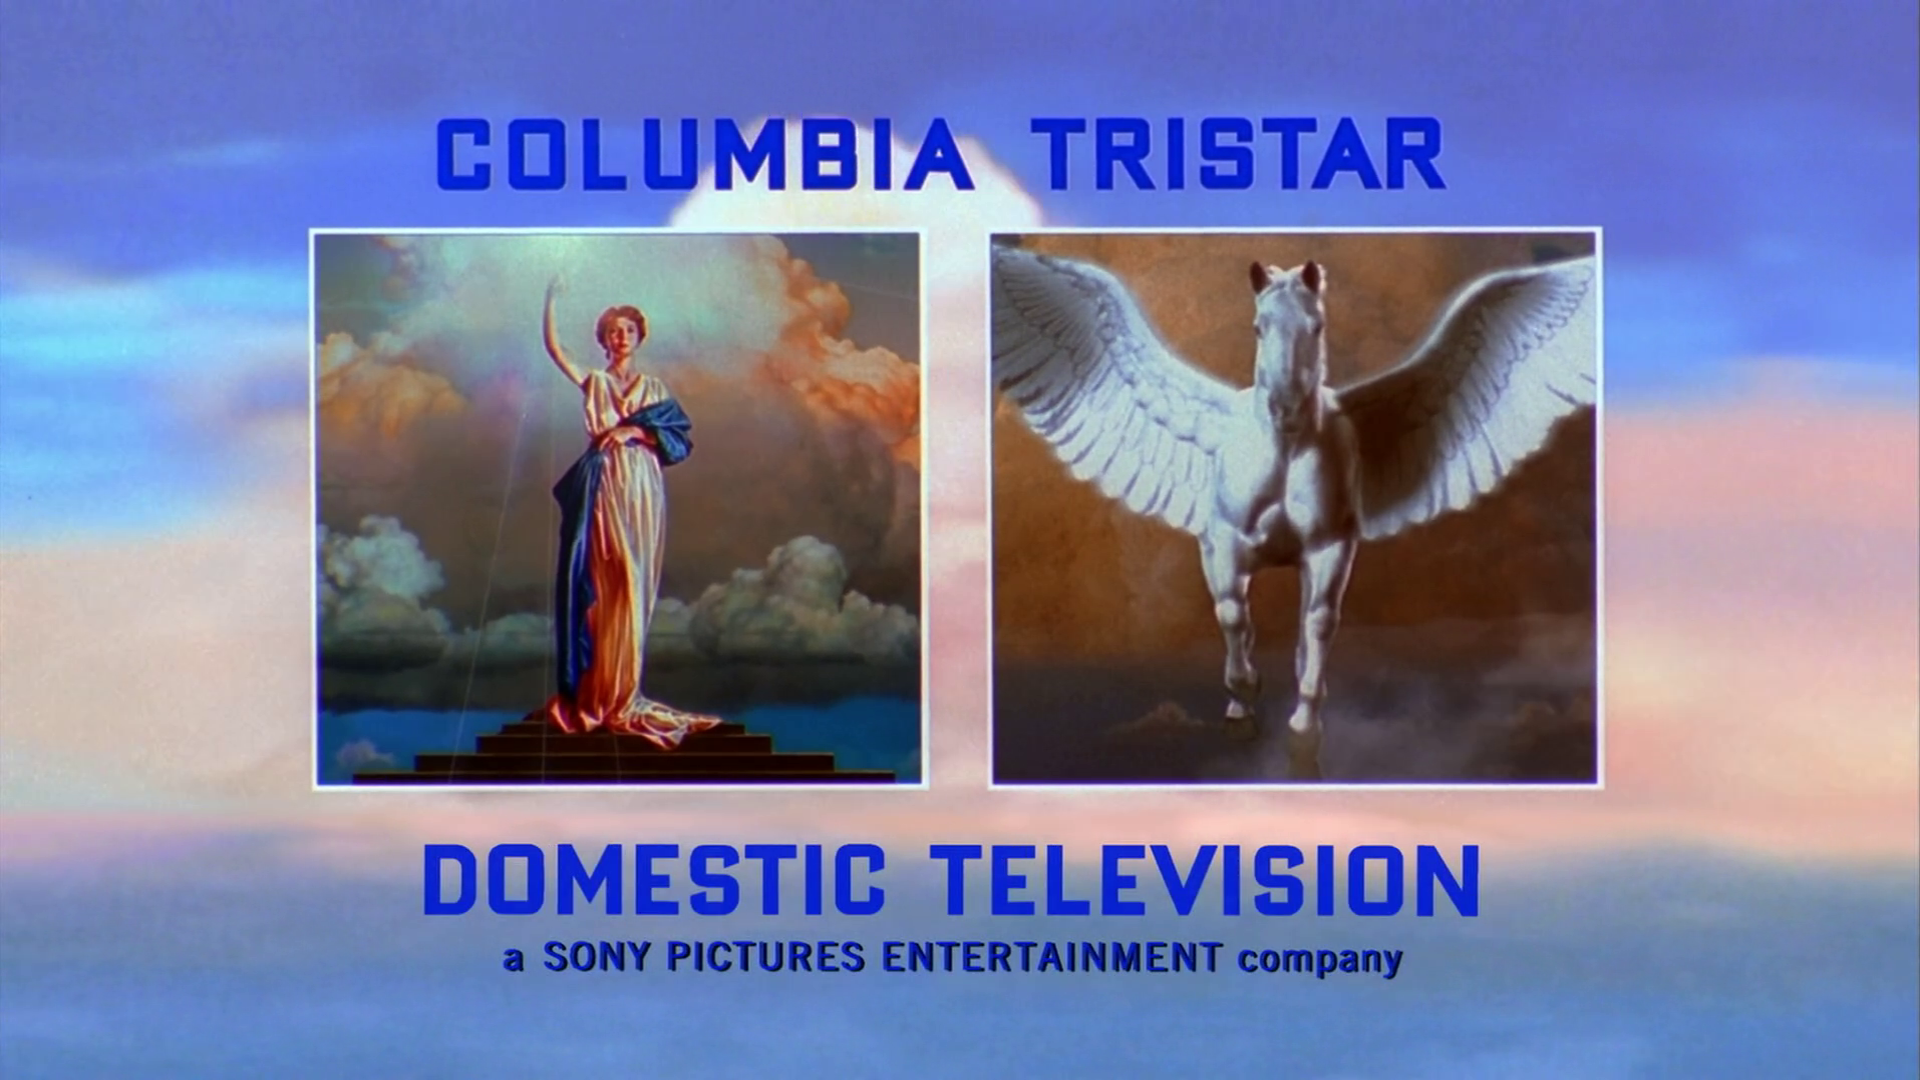 image - columbia tristar 2001 | logopedia | fandom powered by